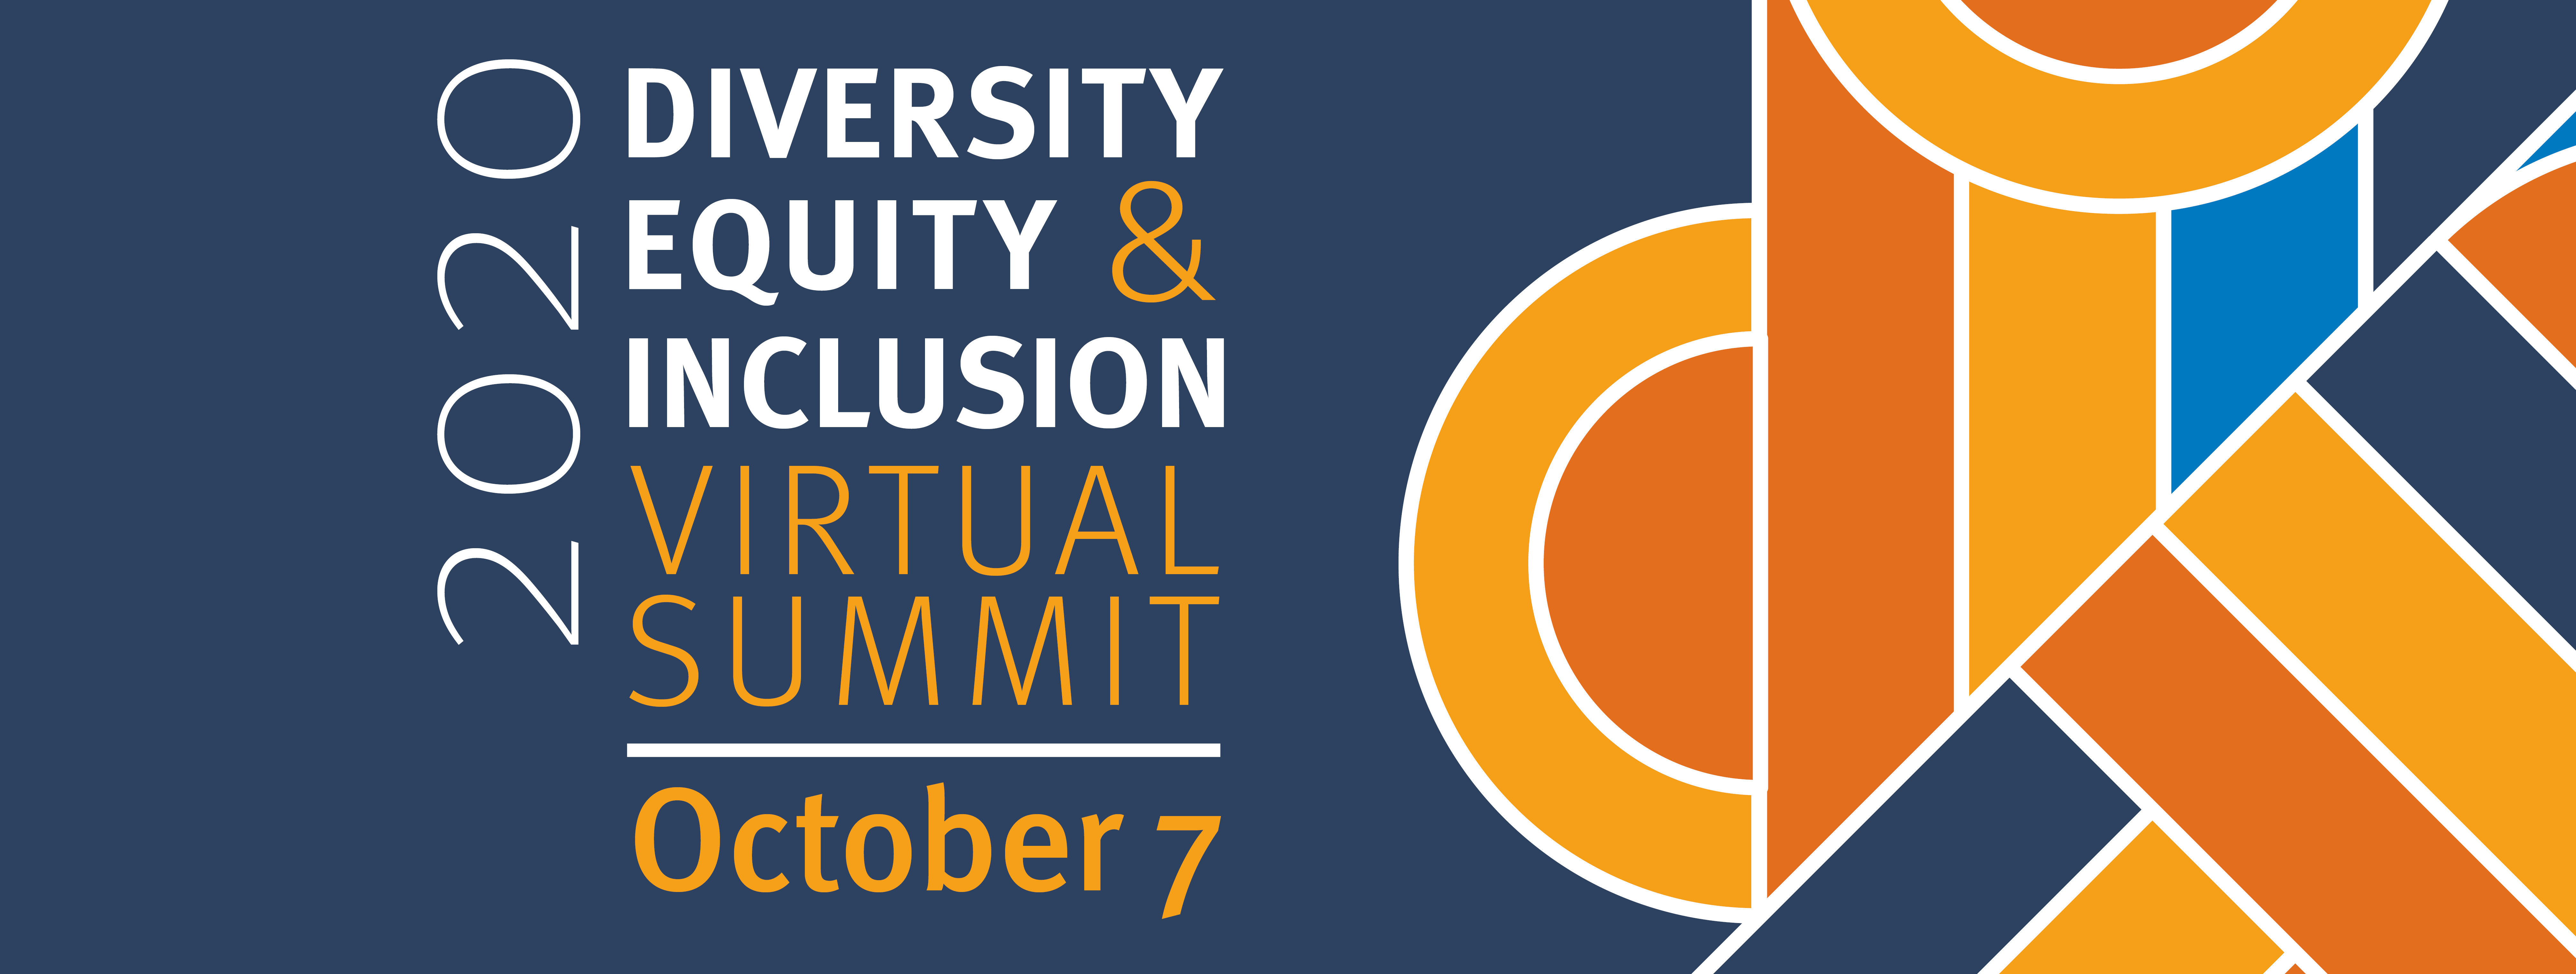 2020 NALP/ALFDP Diversity, Equity & Inclusion Summit